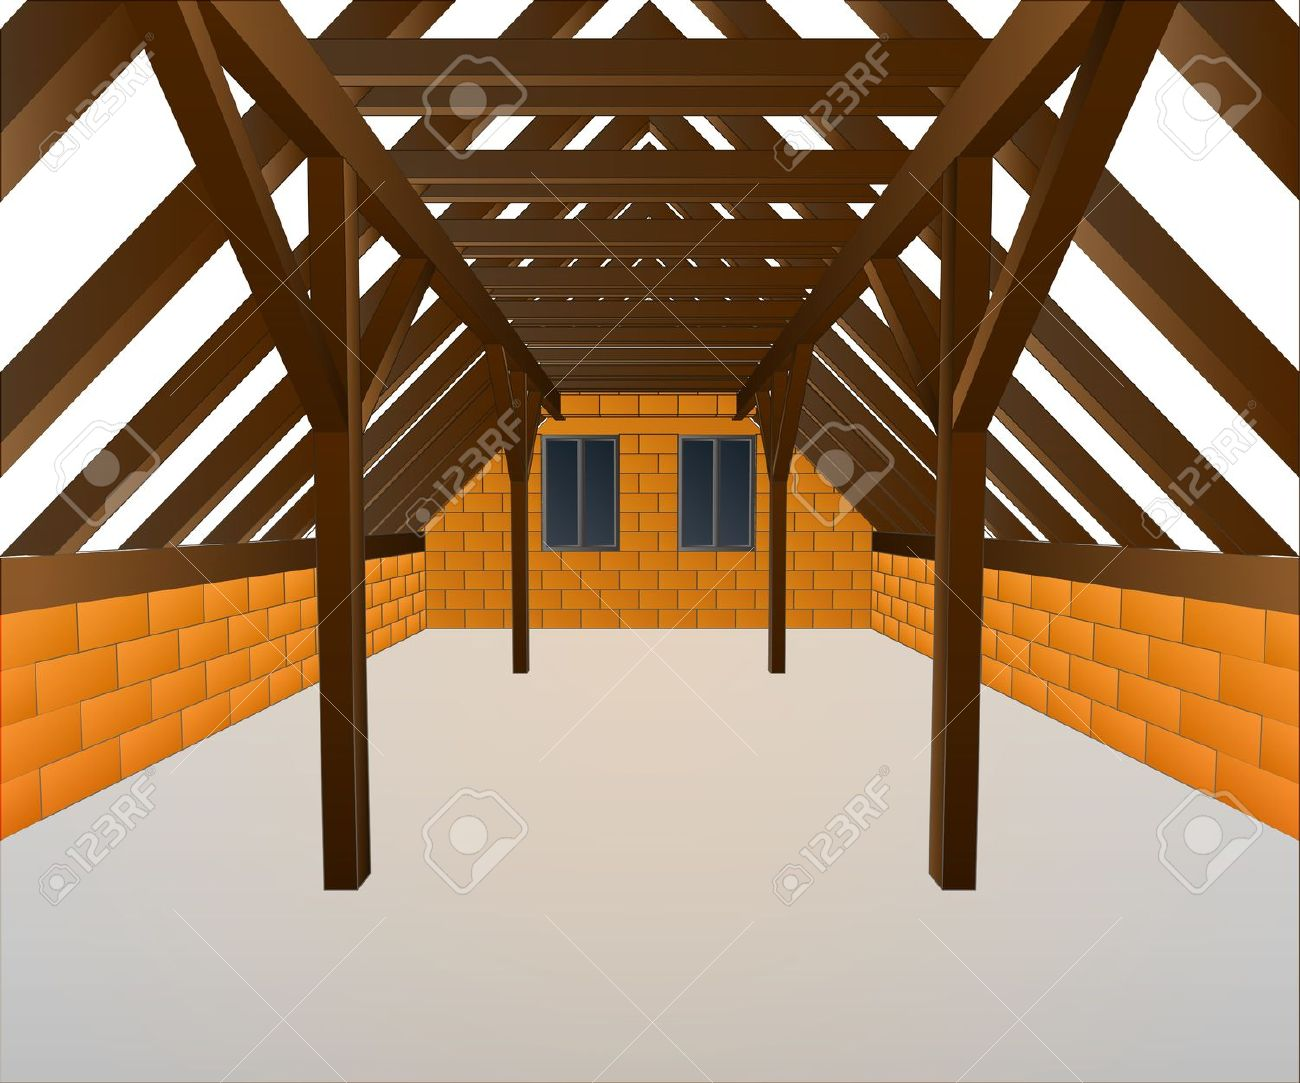 218 Rafter Stock Illustrations, Cliparts And Royalty Free Rafter.